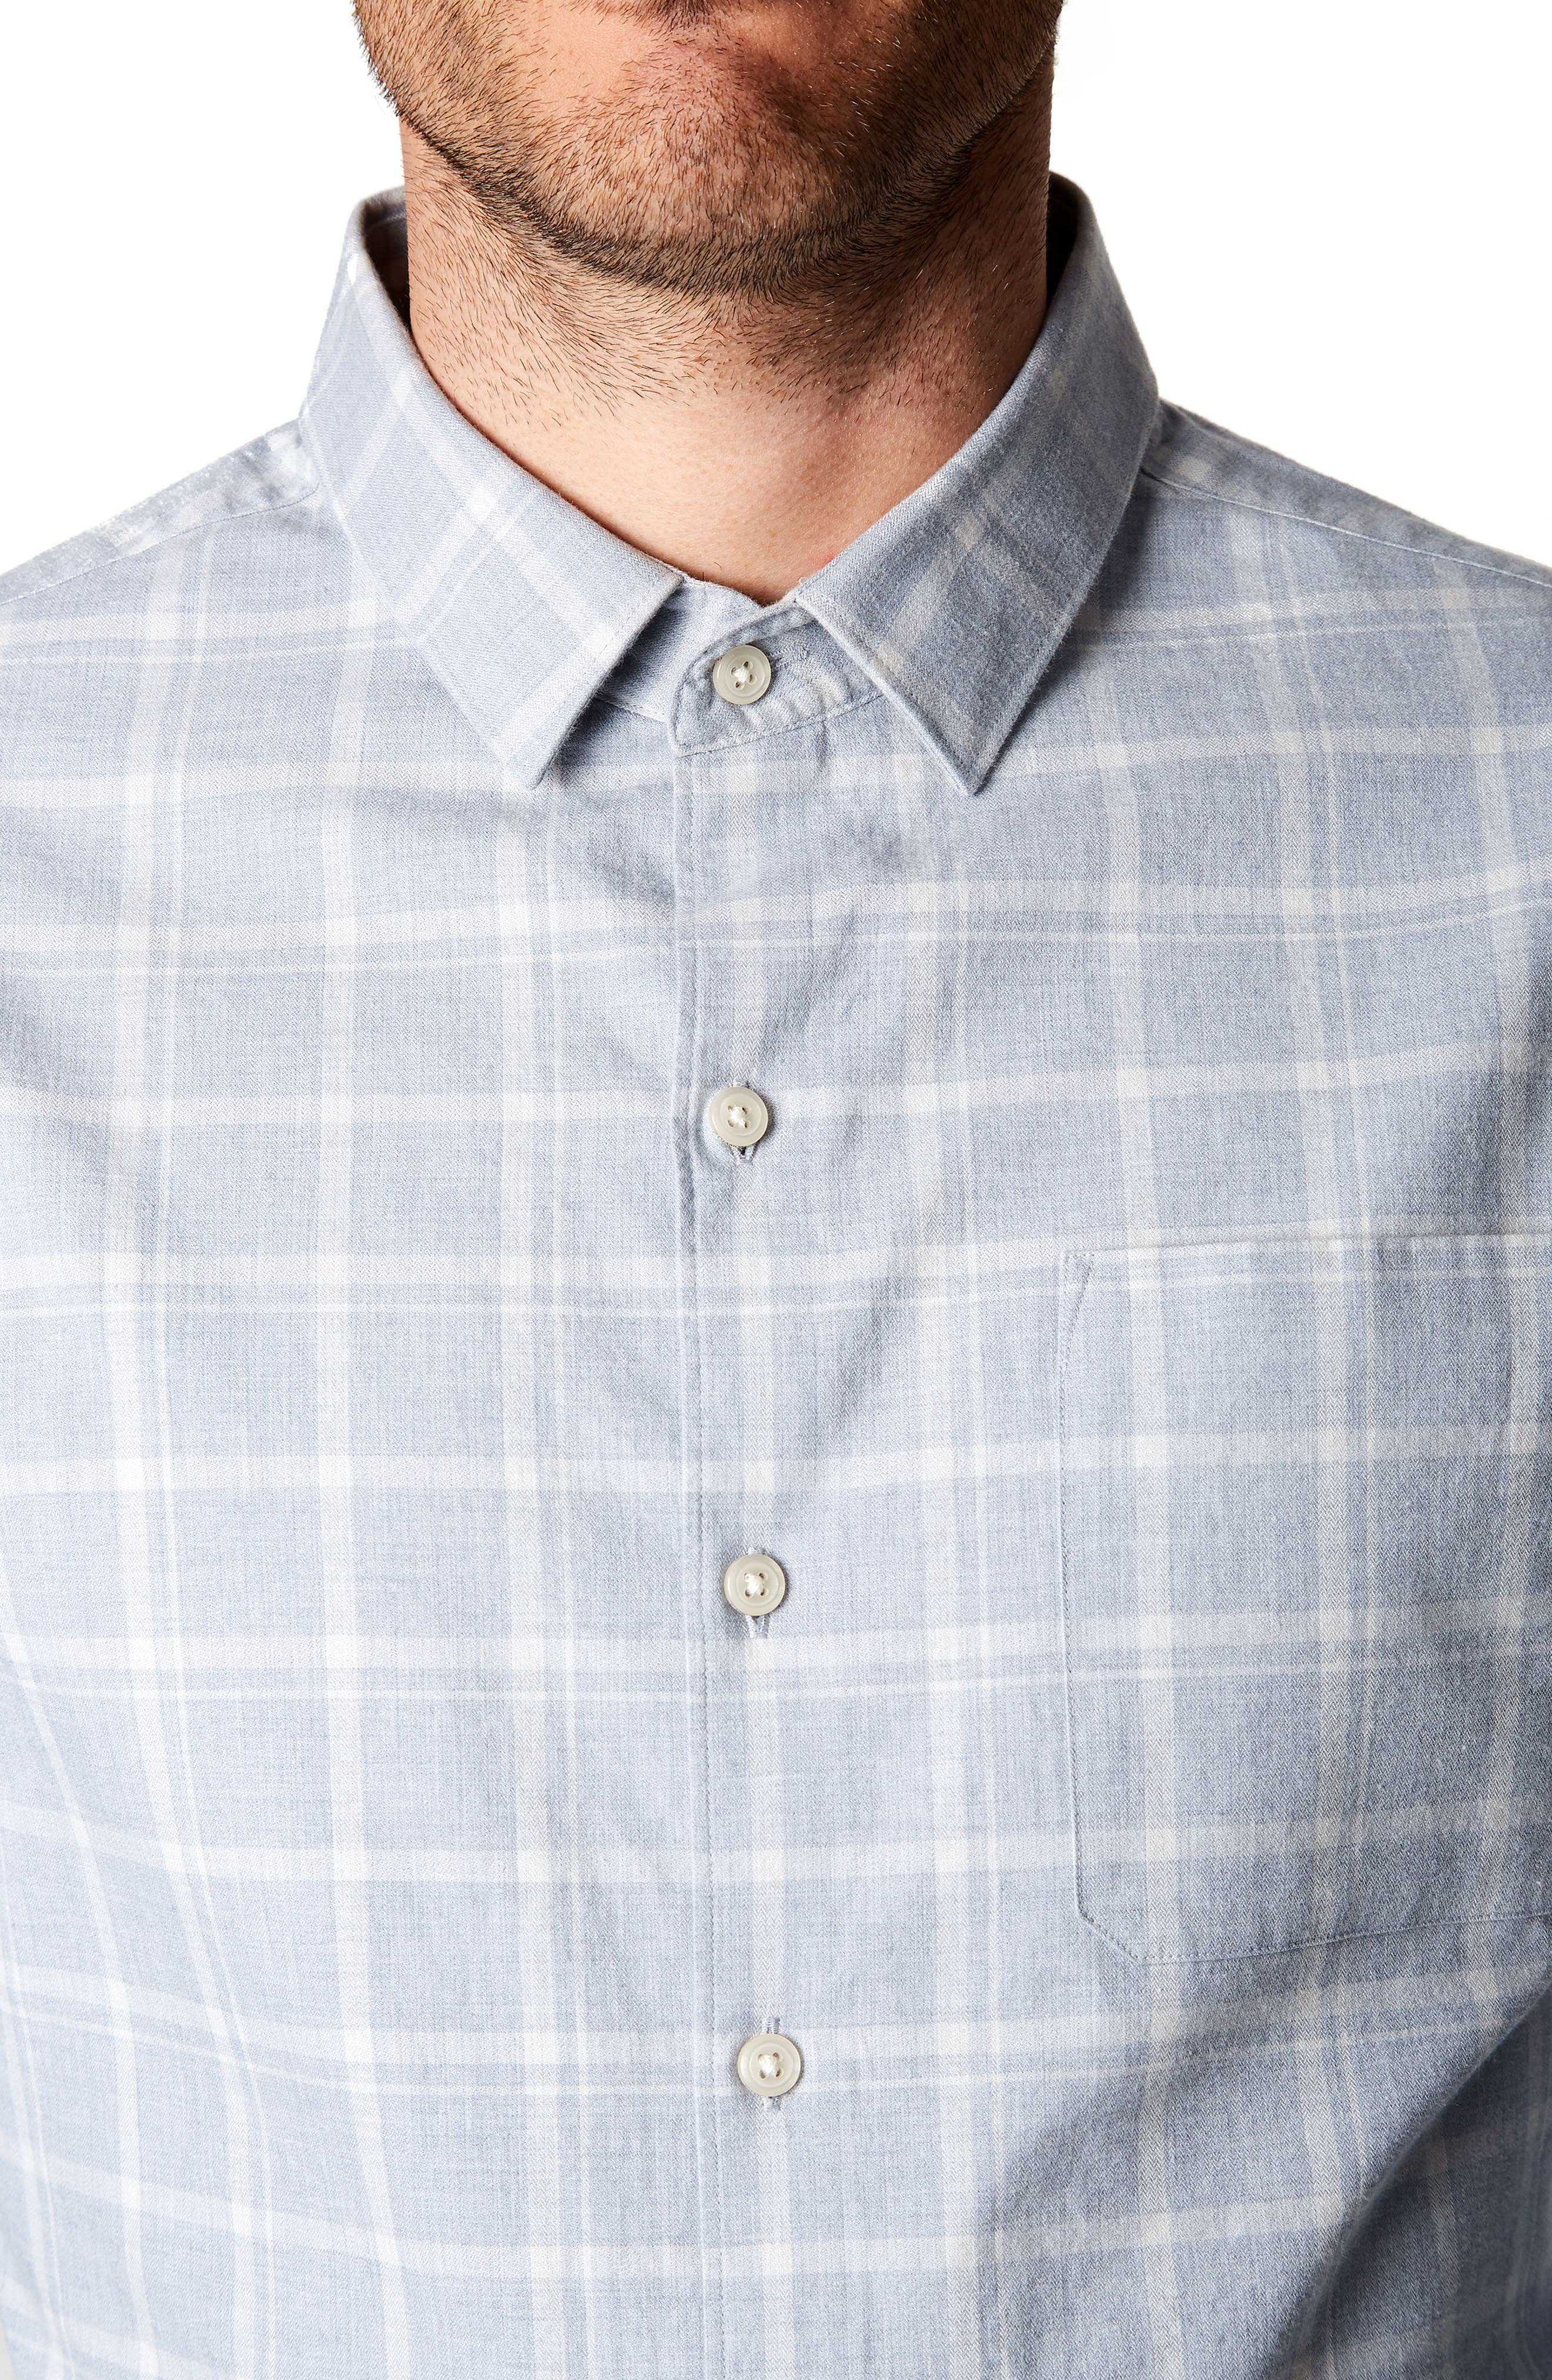 All You Know Plaid Shirt,                             Alternate thumbnail 4, color,                             050